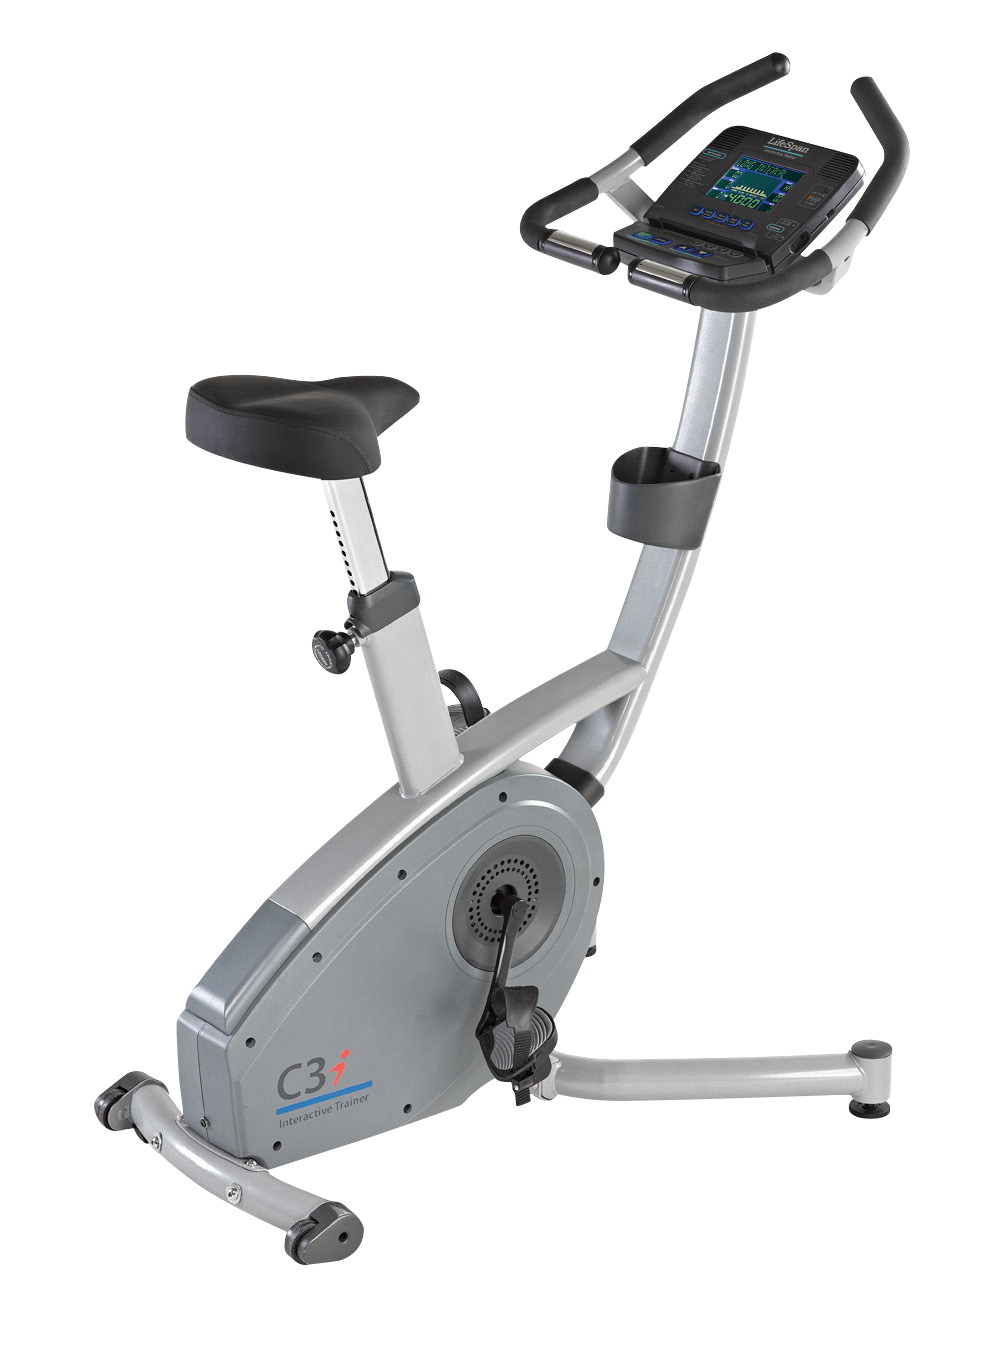 Lifespan Fitness C3i Upright Stationary Exercise Bike